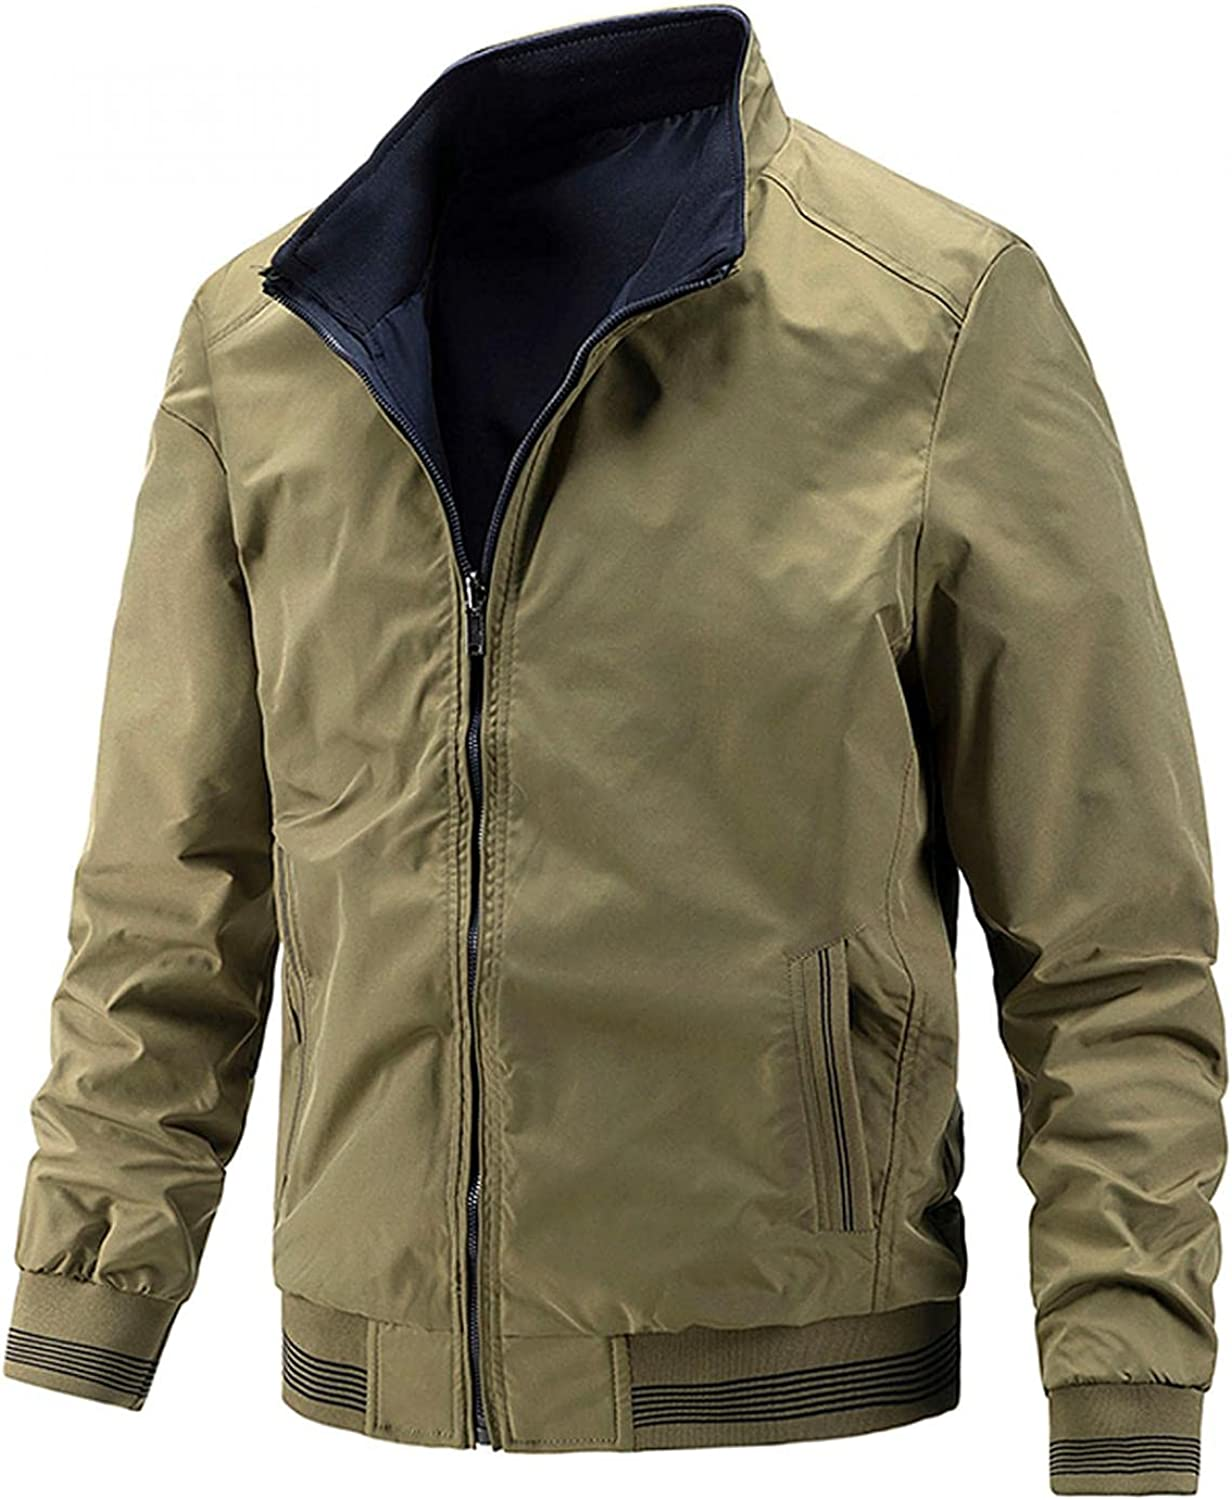 Beshion Men Jackets Casual Lightweight Coats Long Sleeves Winter & Fall Military Tactical Sport Outwear with Pocket